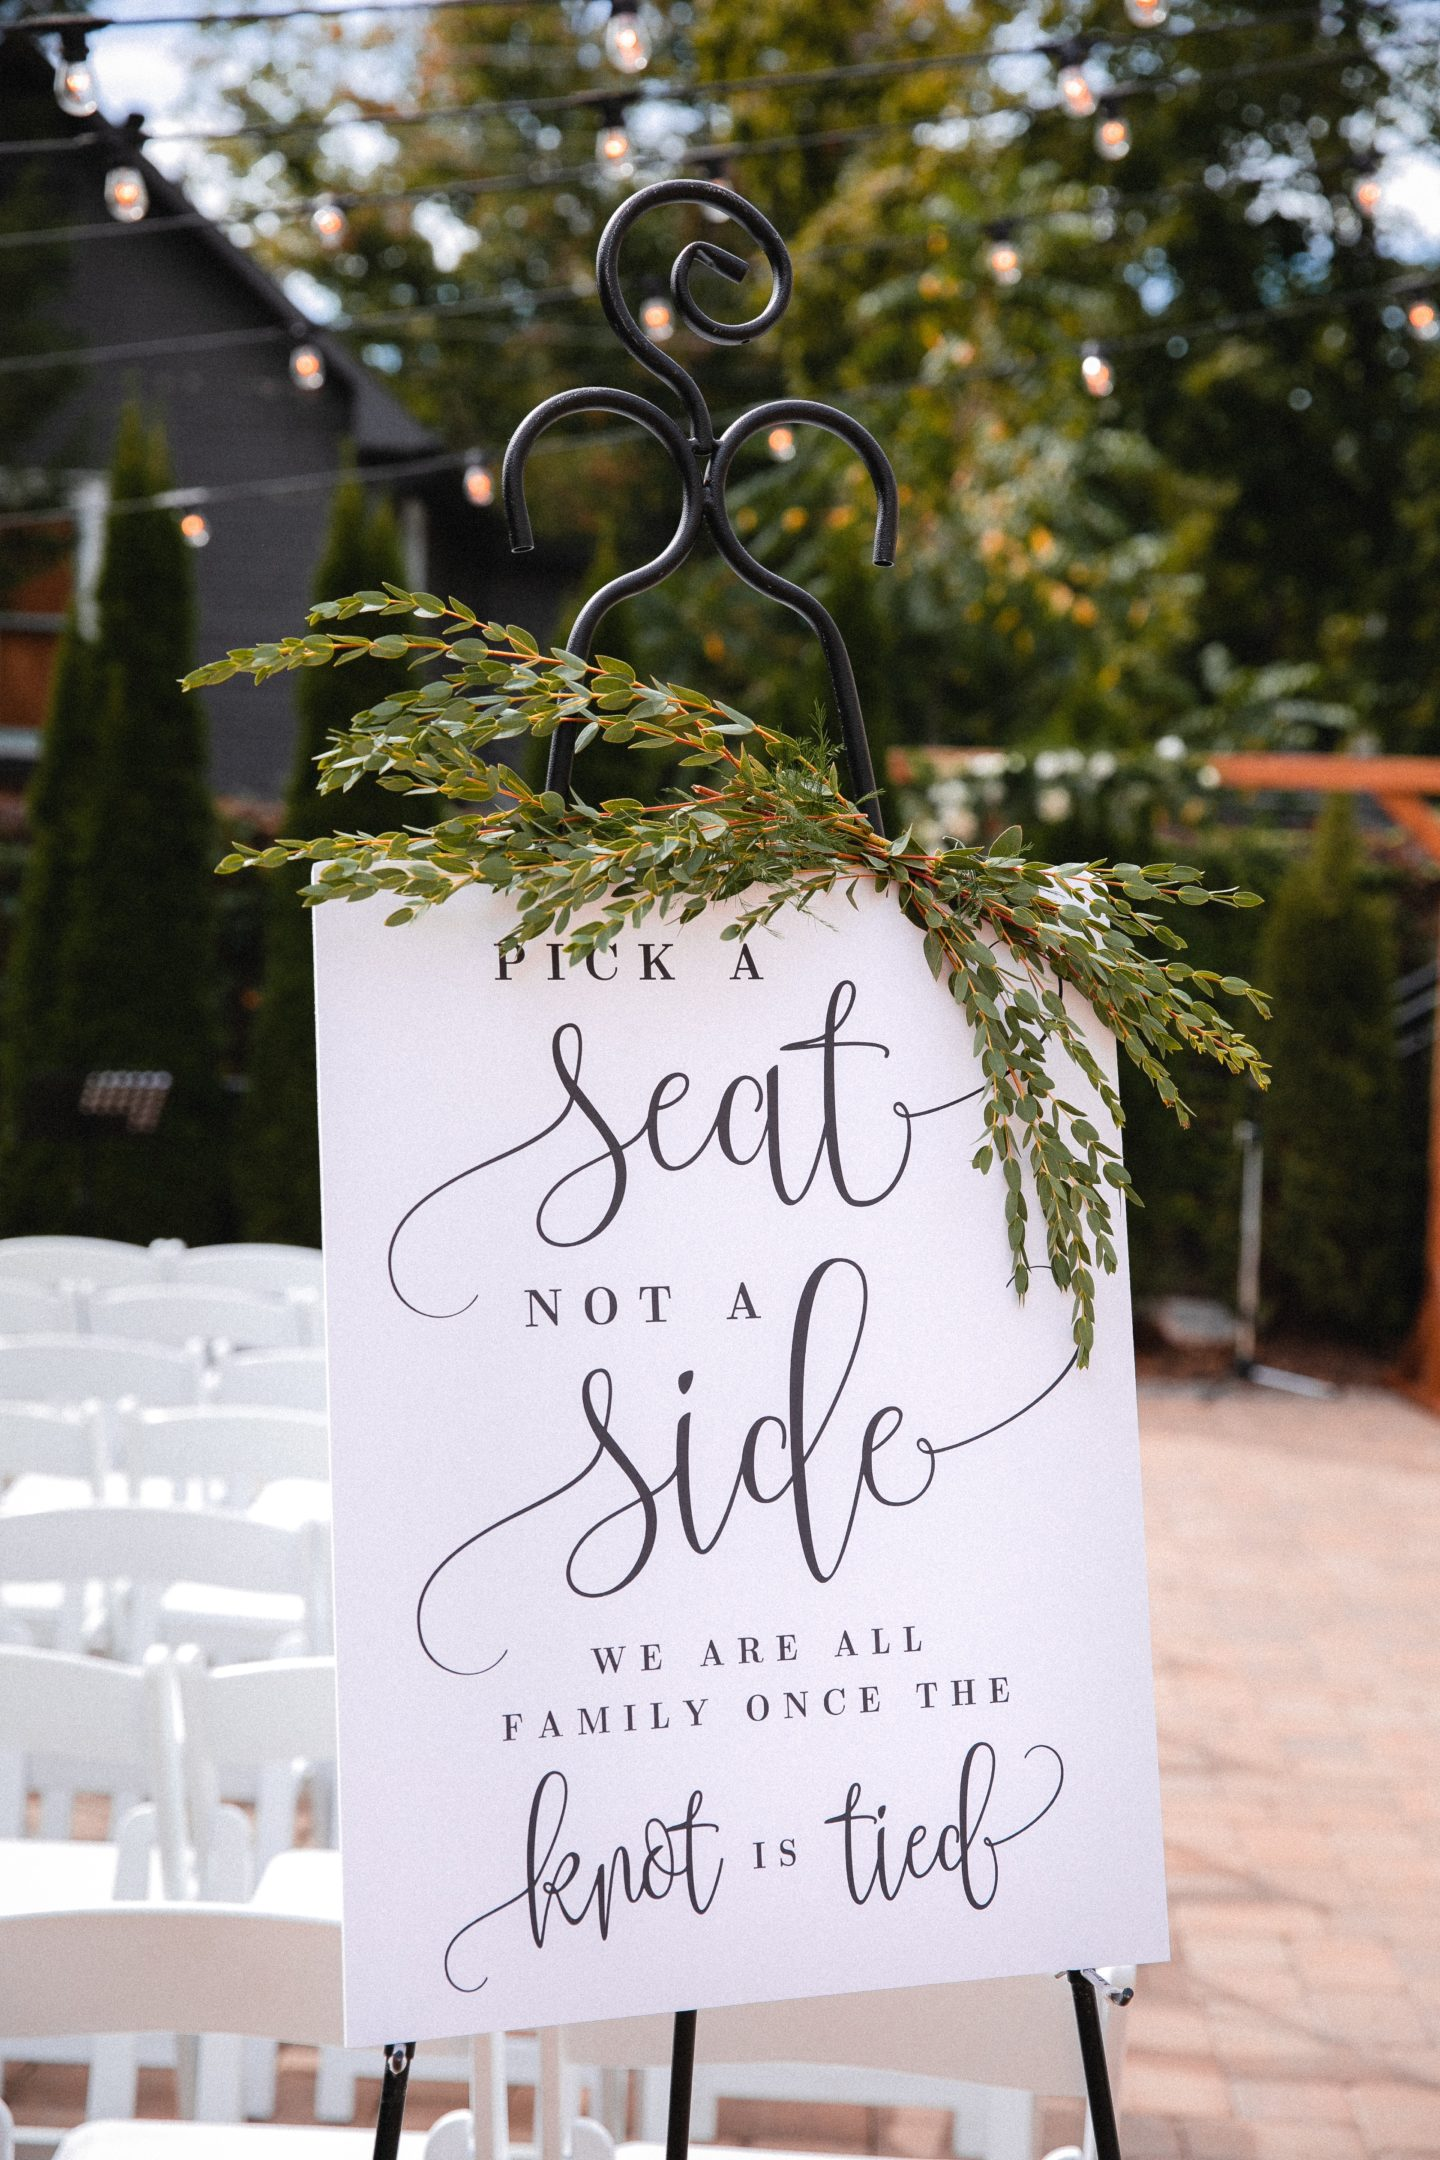 5 Tips For Planning A Wedding With Deaf or Hard of Hearing Guests